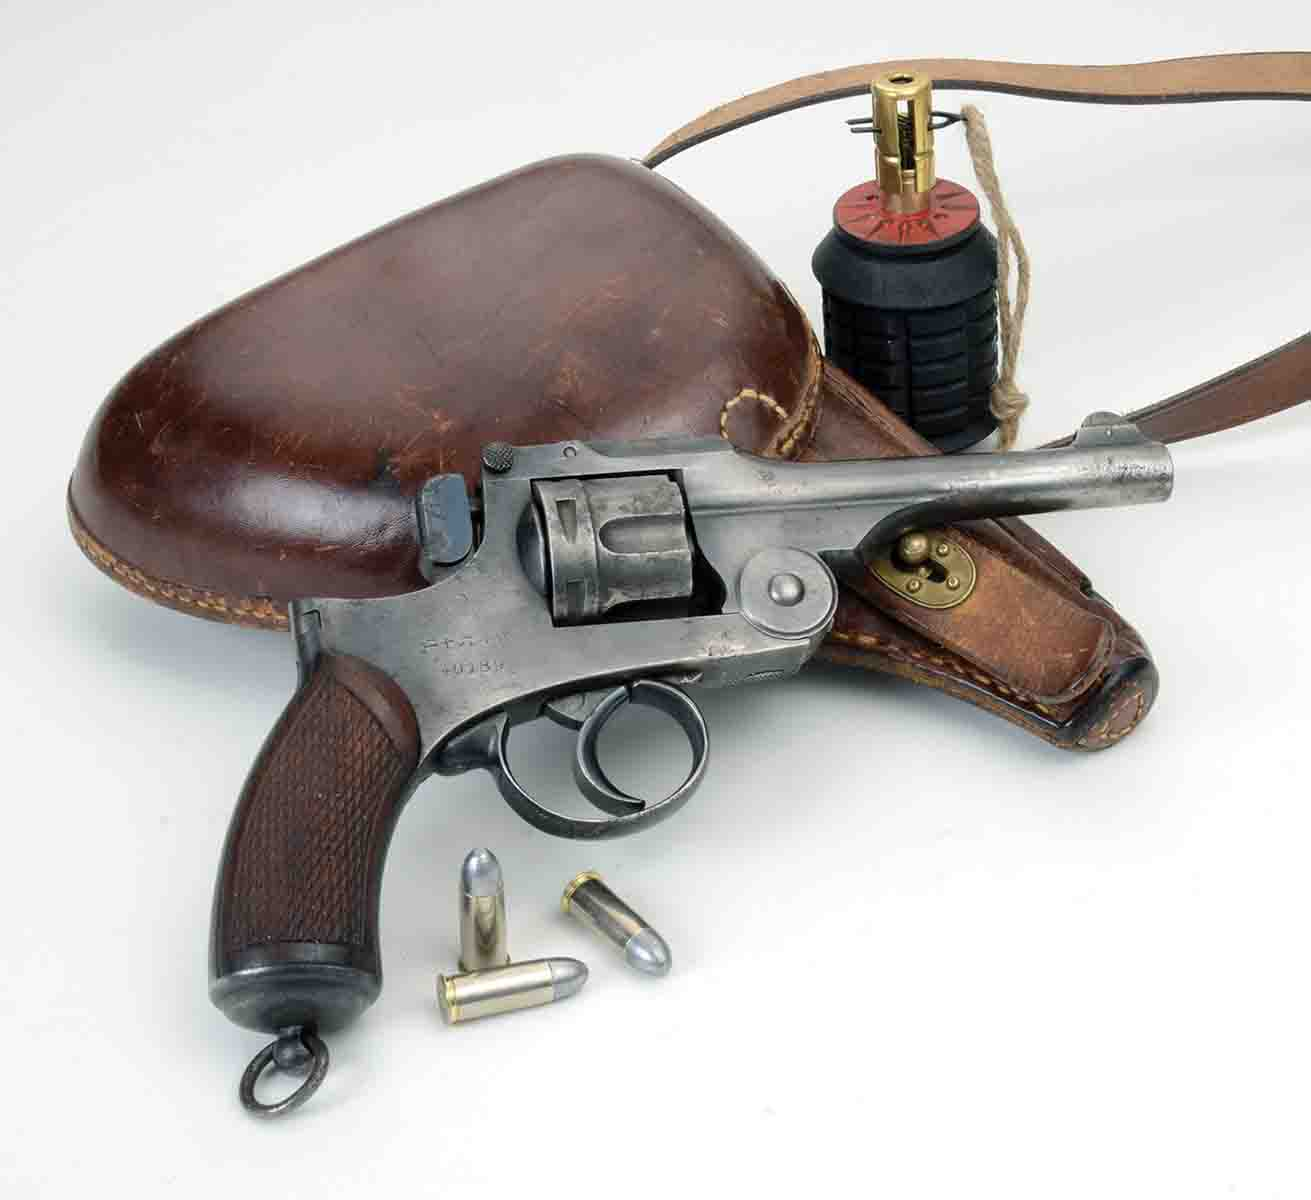 This is a Japanese Type 26 9mm revolver.